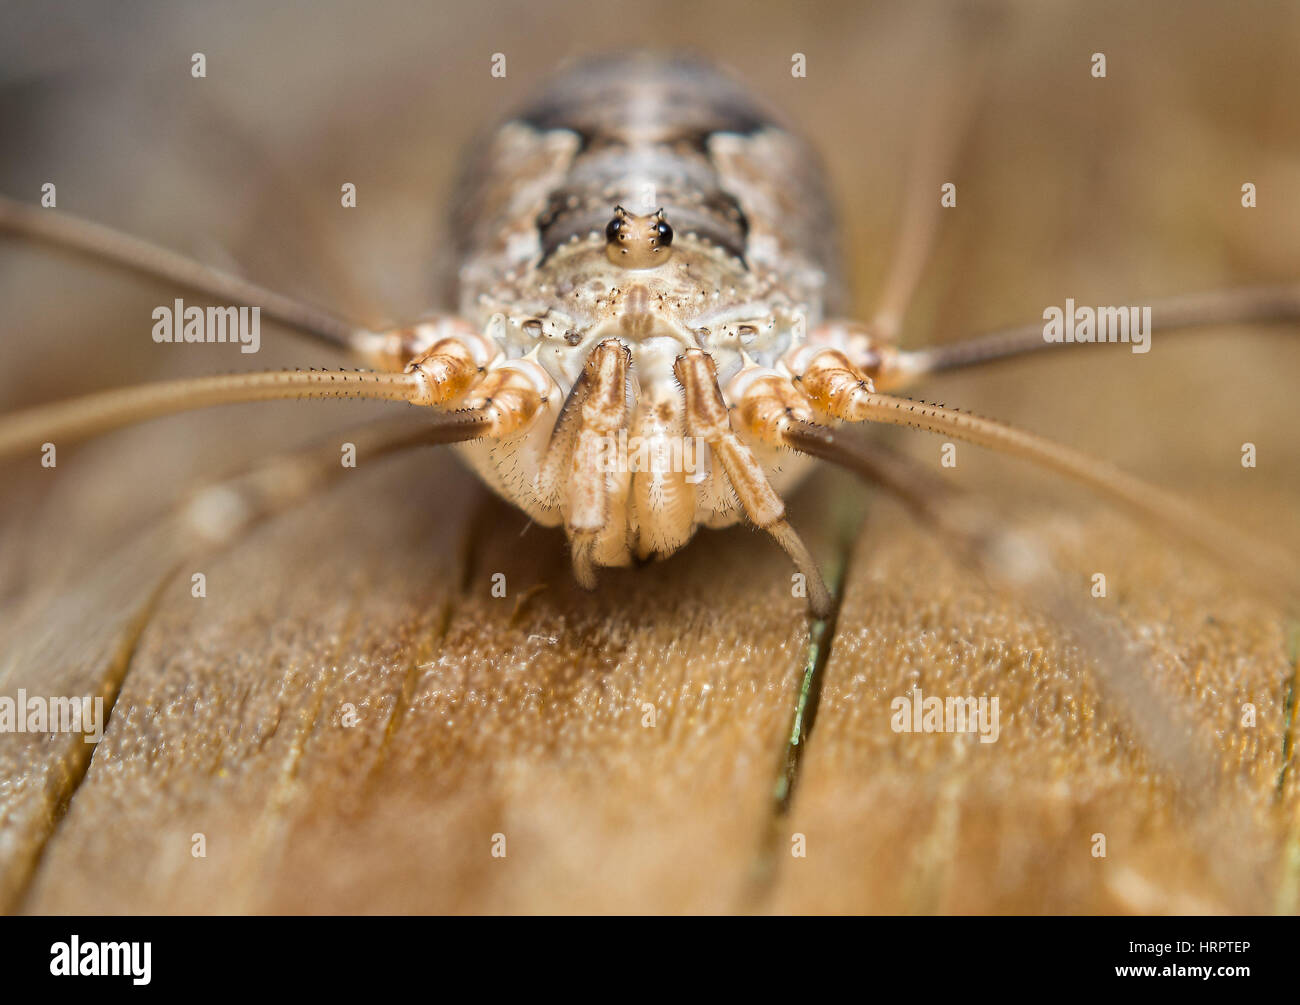 Extreme macro photo anterior view of a harvestmen or daddy longlegs. Opiliones - Stock Image